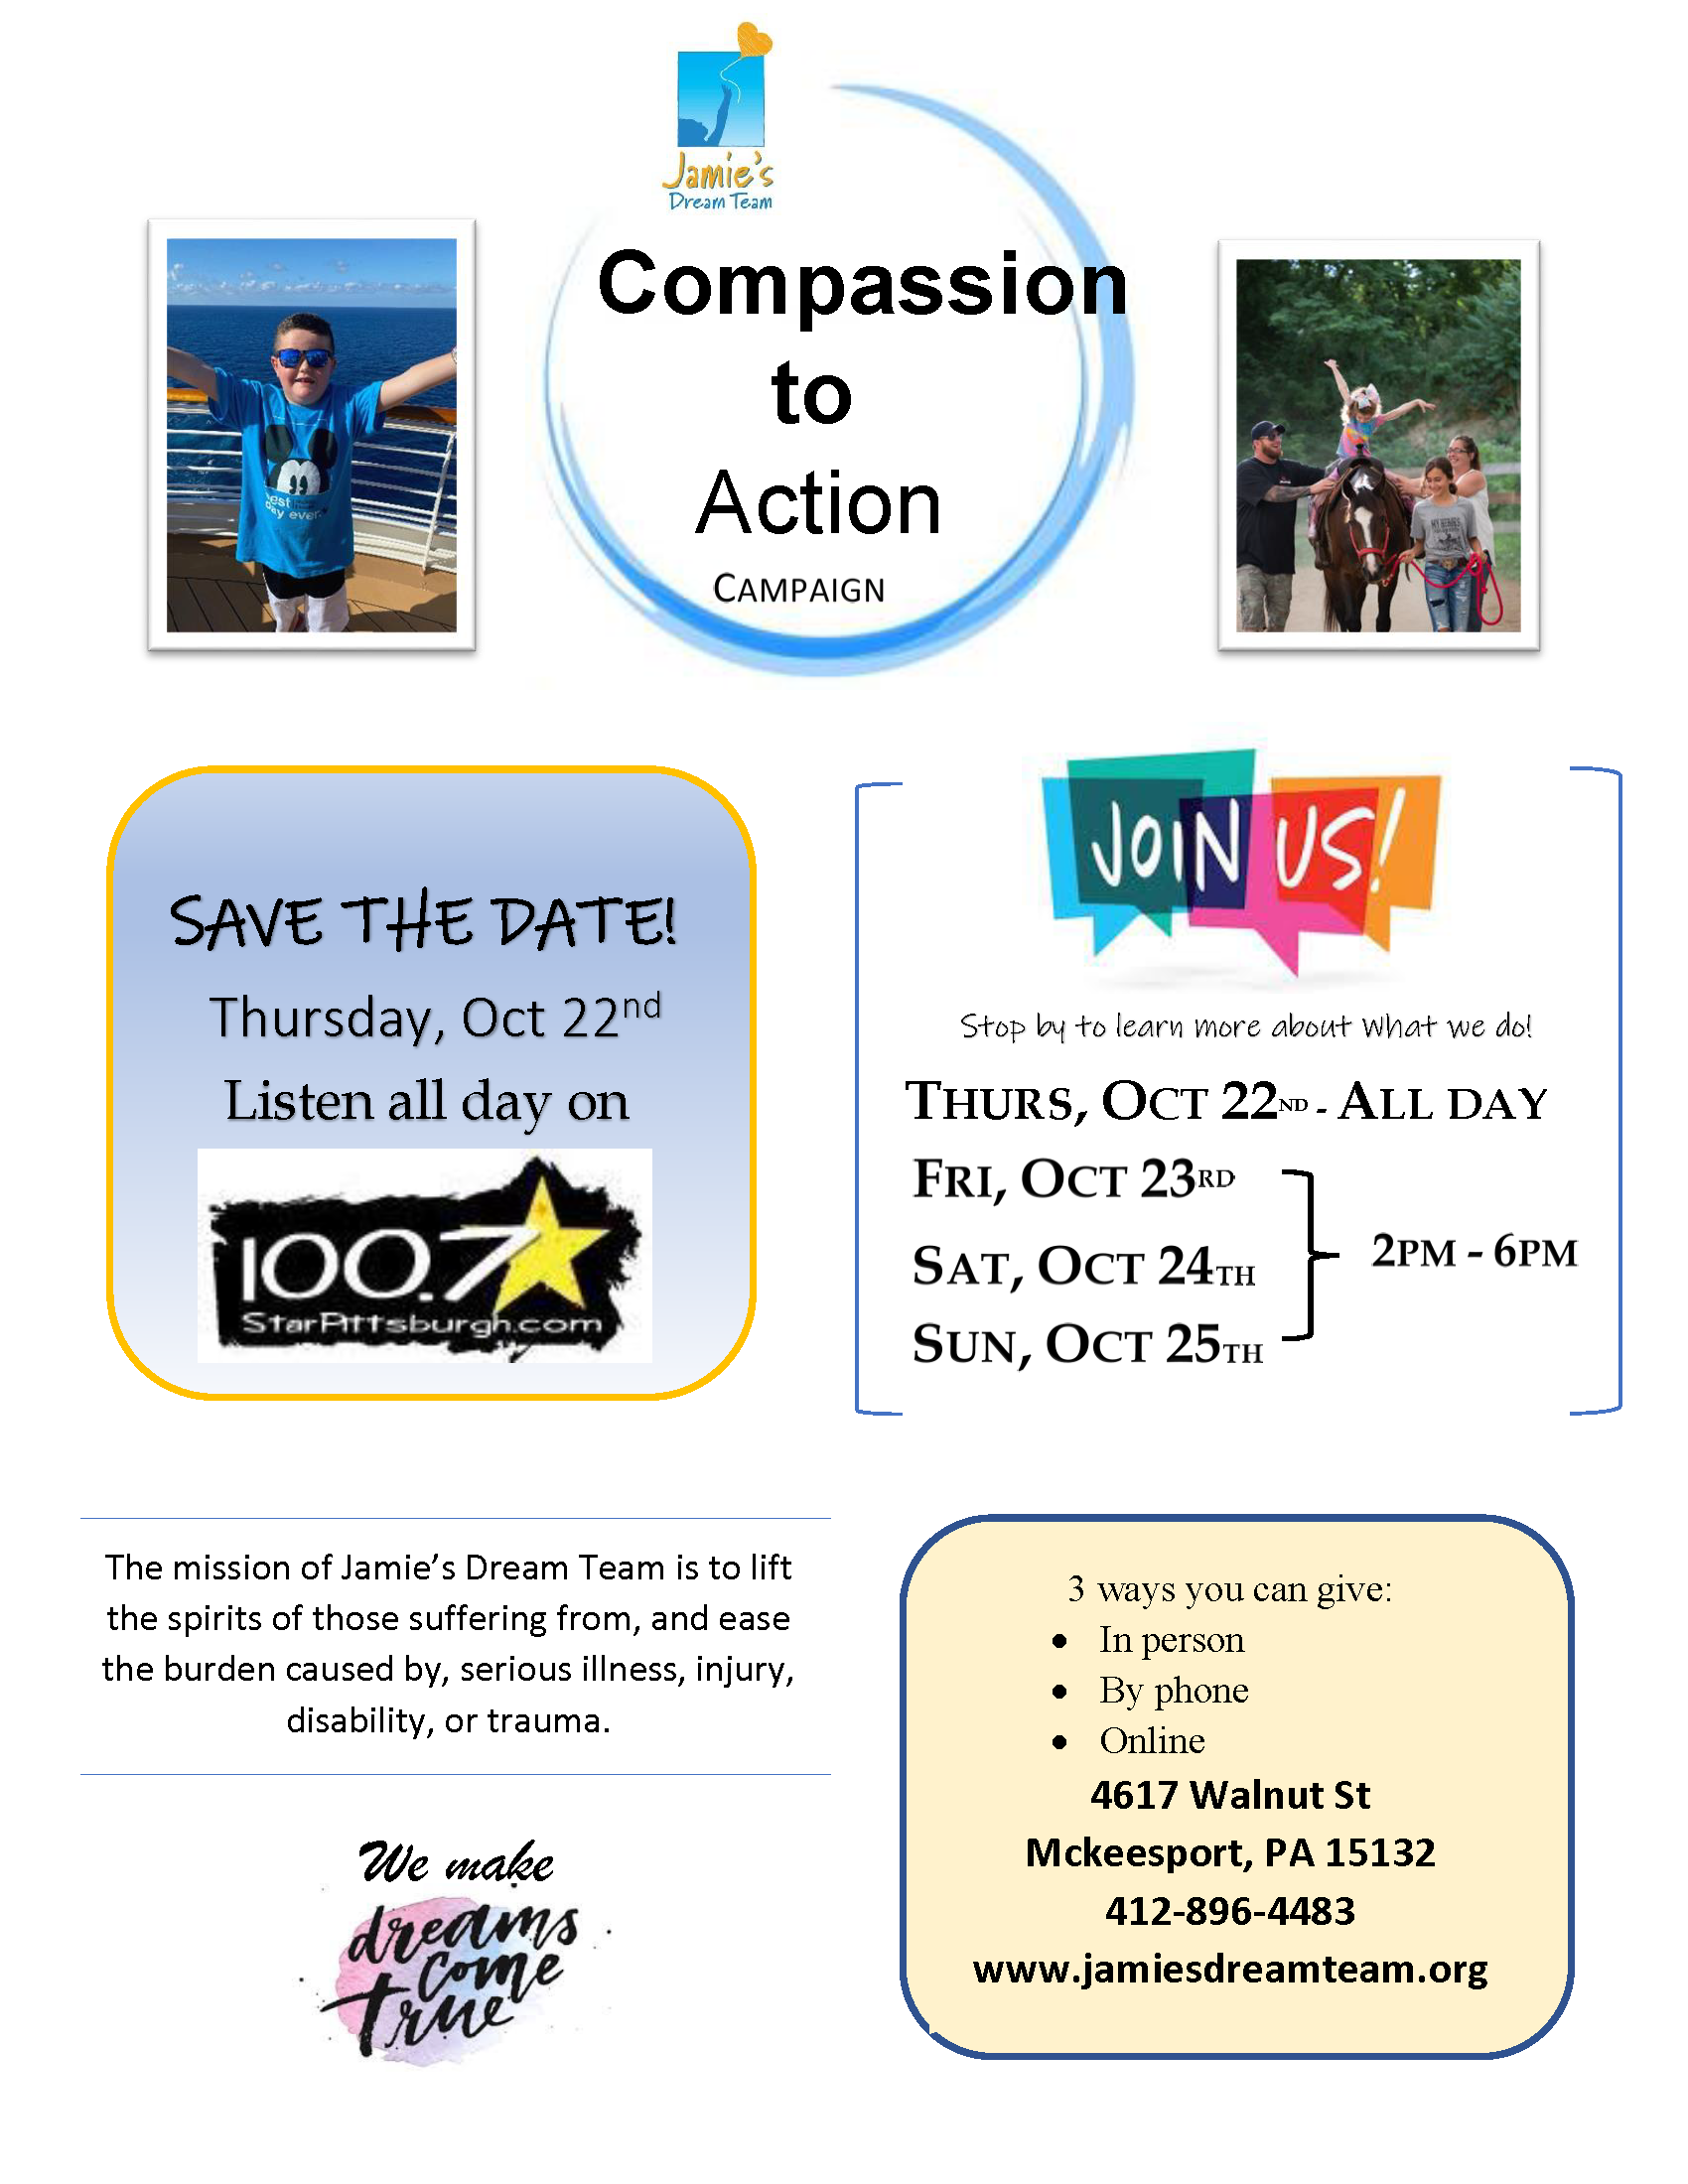 Compassion to Action Campaign